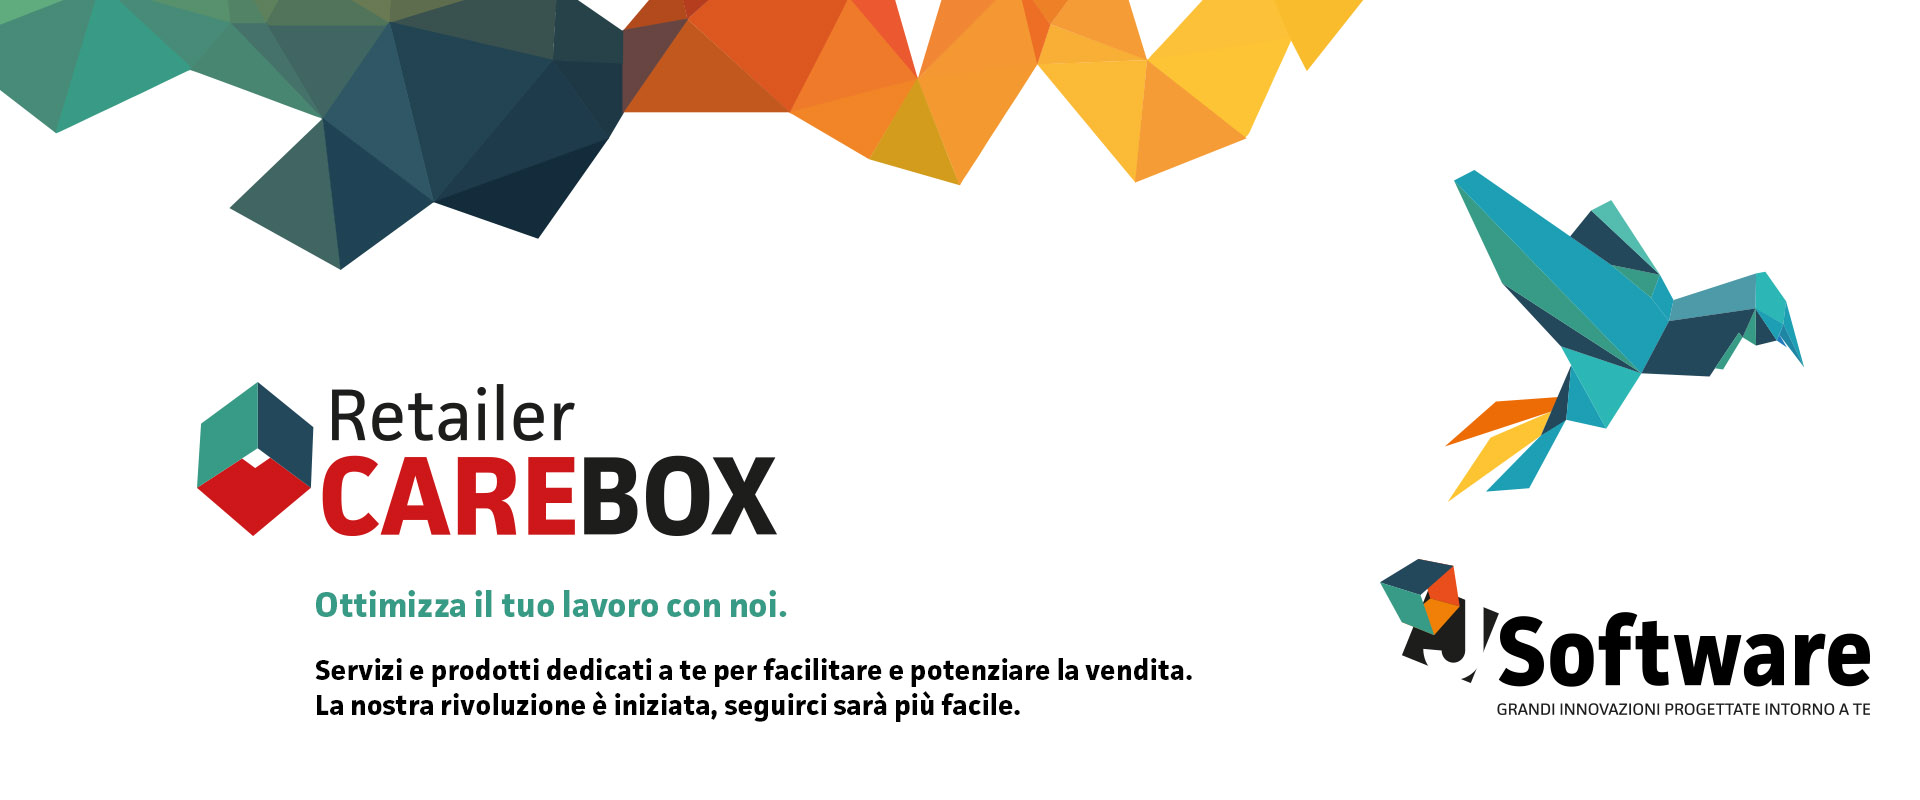 carebox_bozza